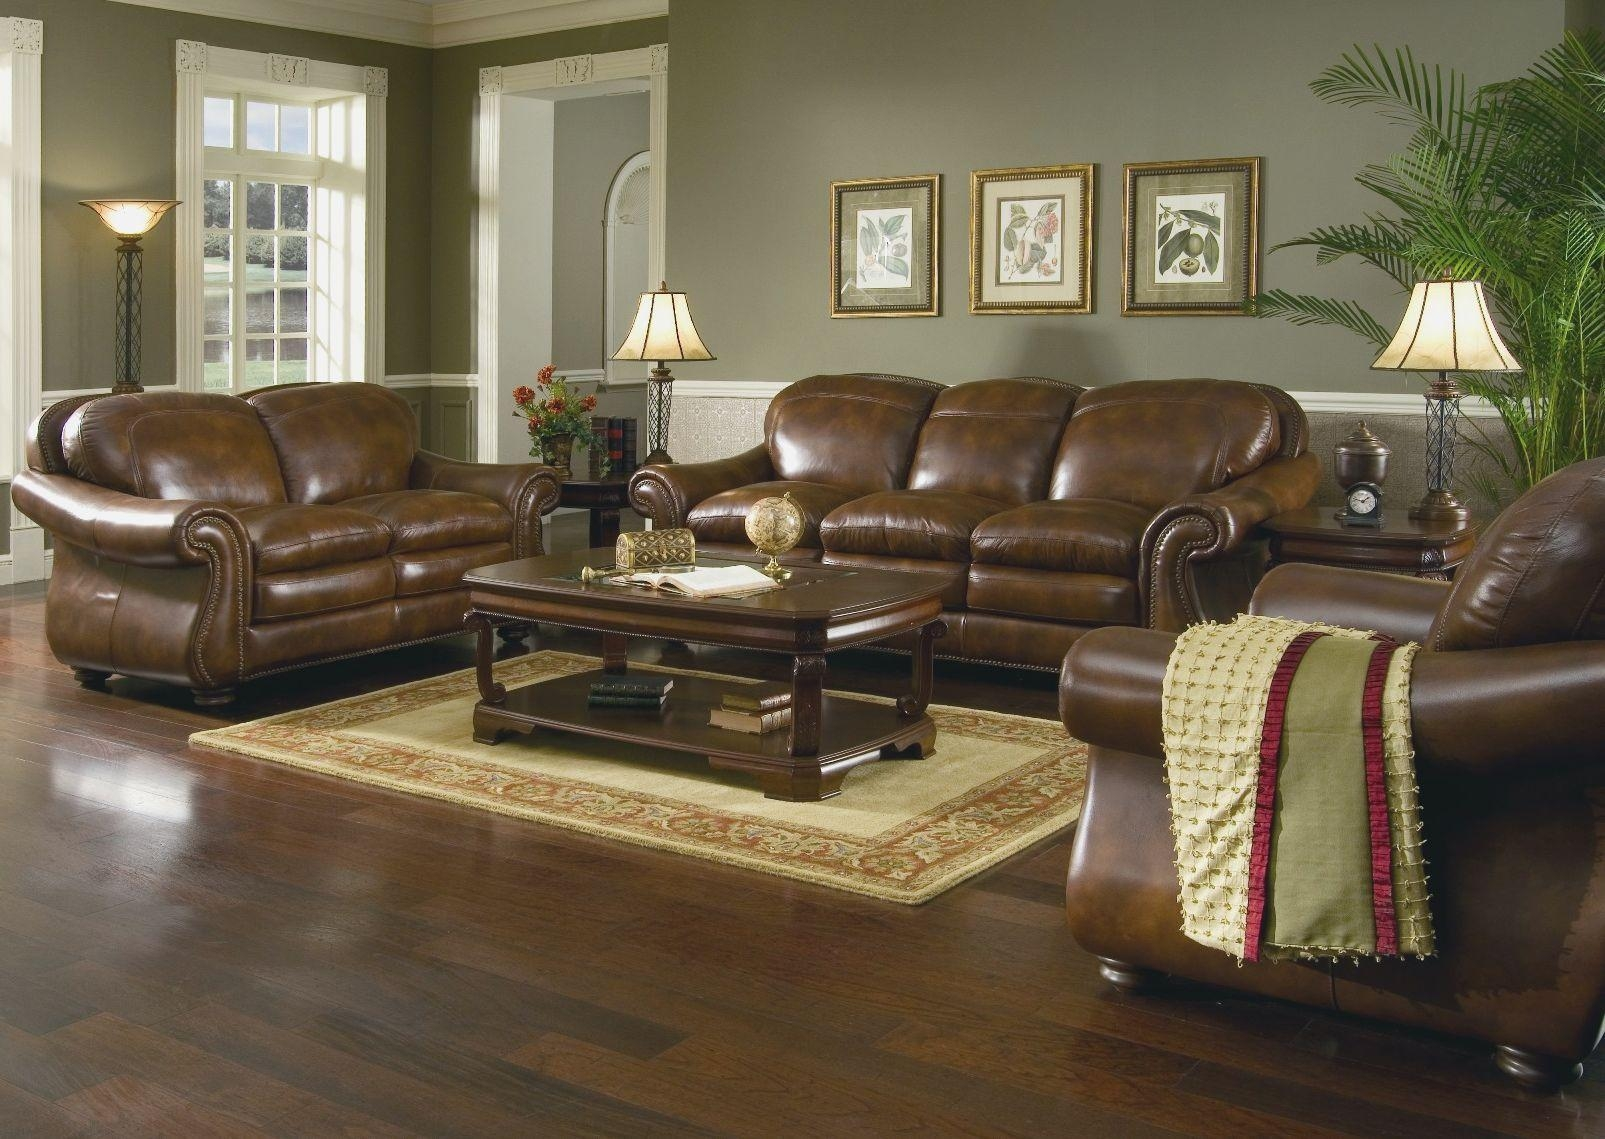 Chocolate Brown Couch Decorating Ideas 20 Inspirations Living Room With Brown Sofas Sofa Ideas